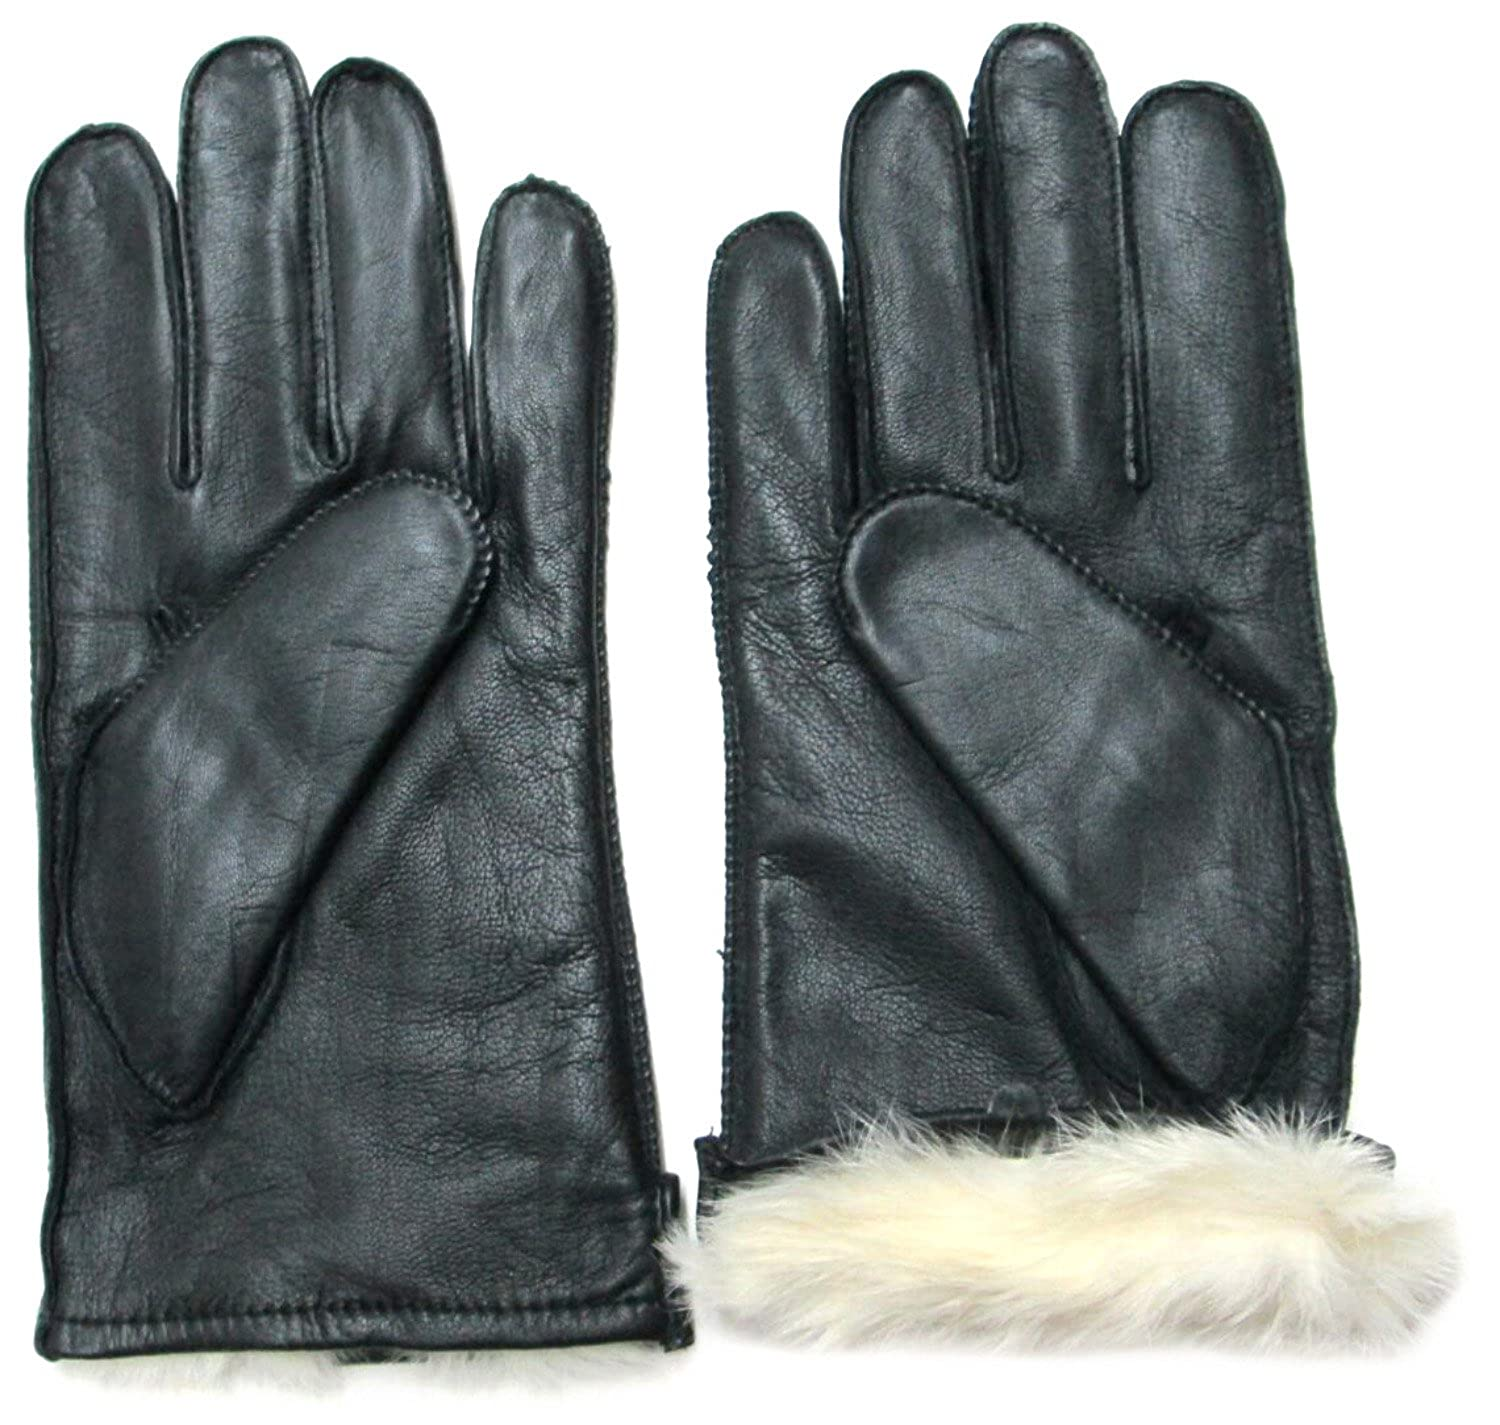 aad985058 FOWNES Men's Rabbit Fur Lined Black Napa Leather Gloves at Amazon Men's  Clothing store: